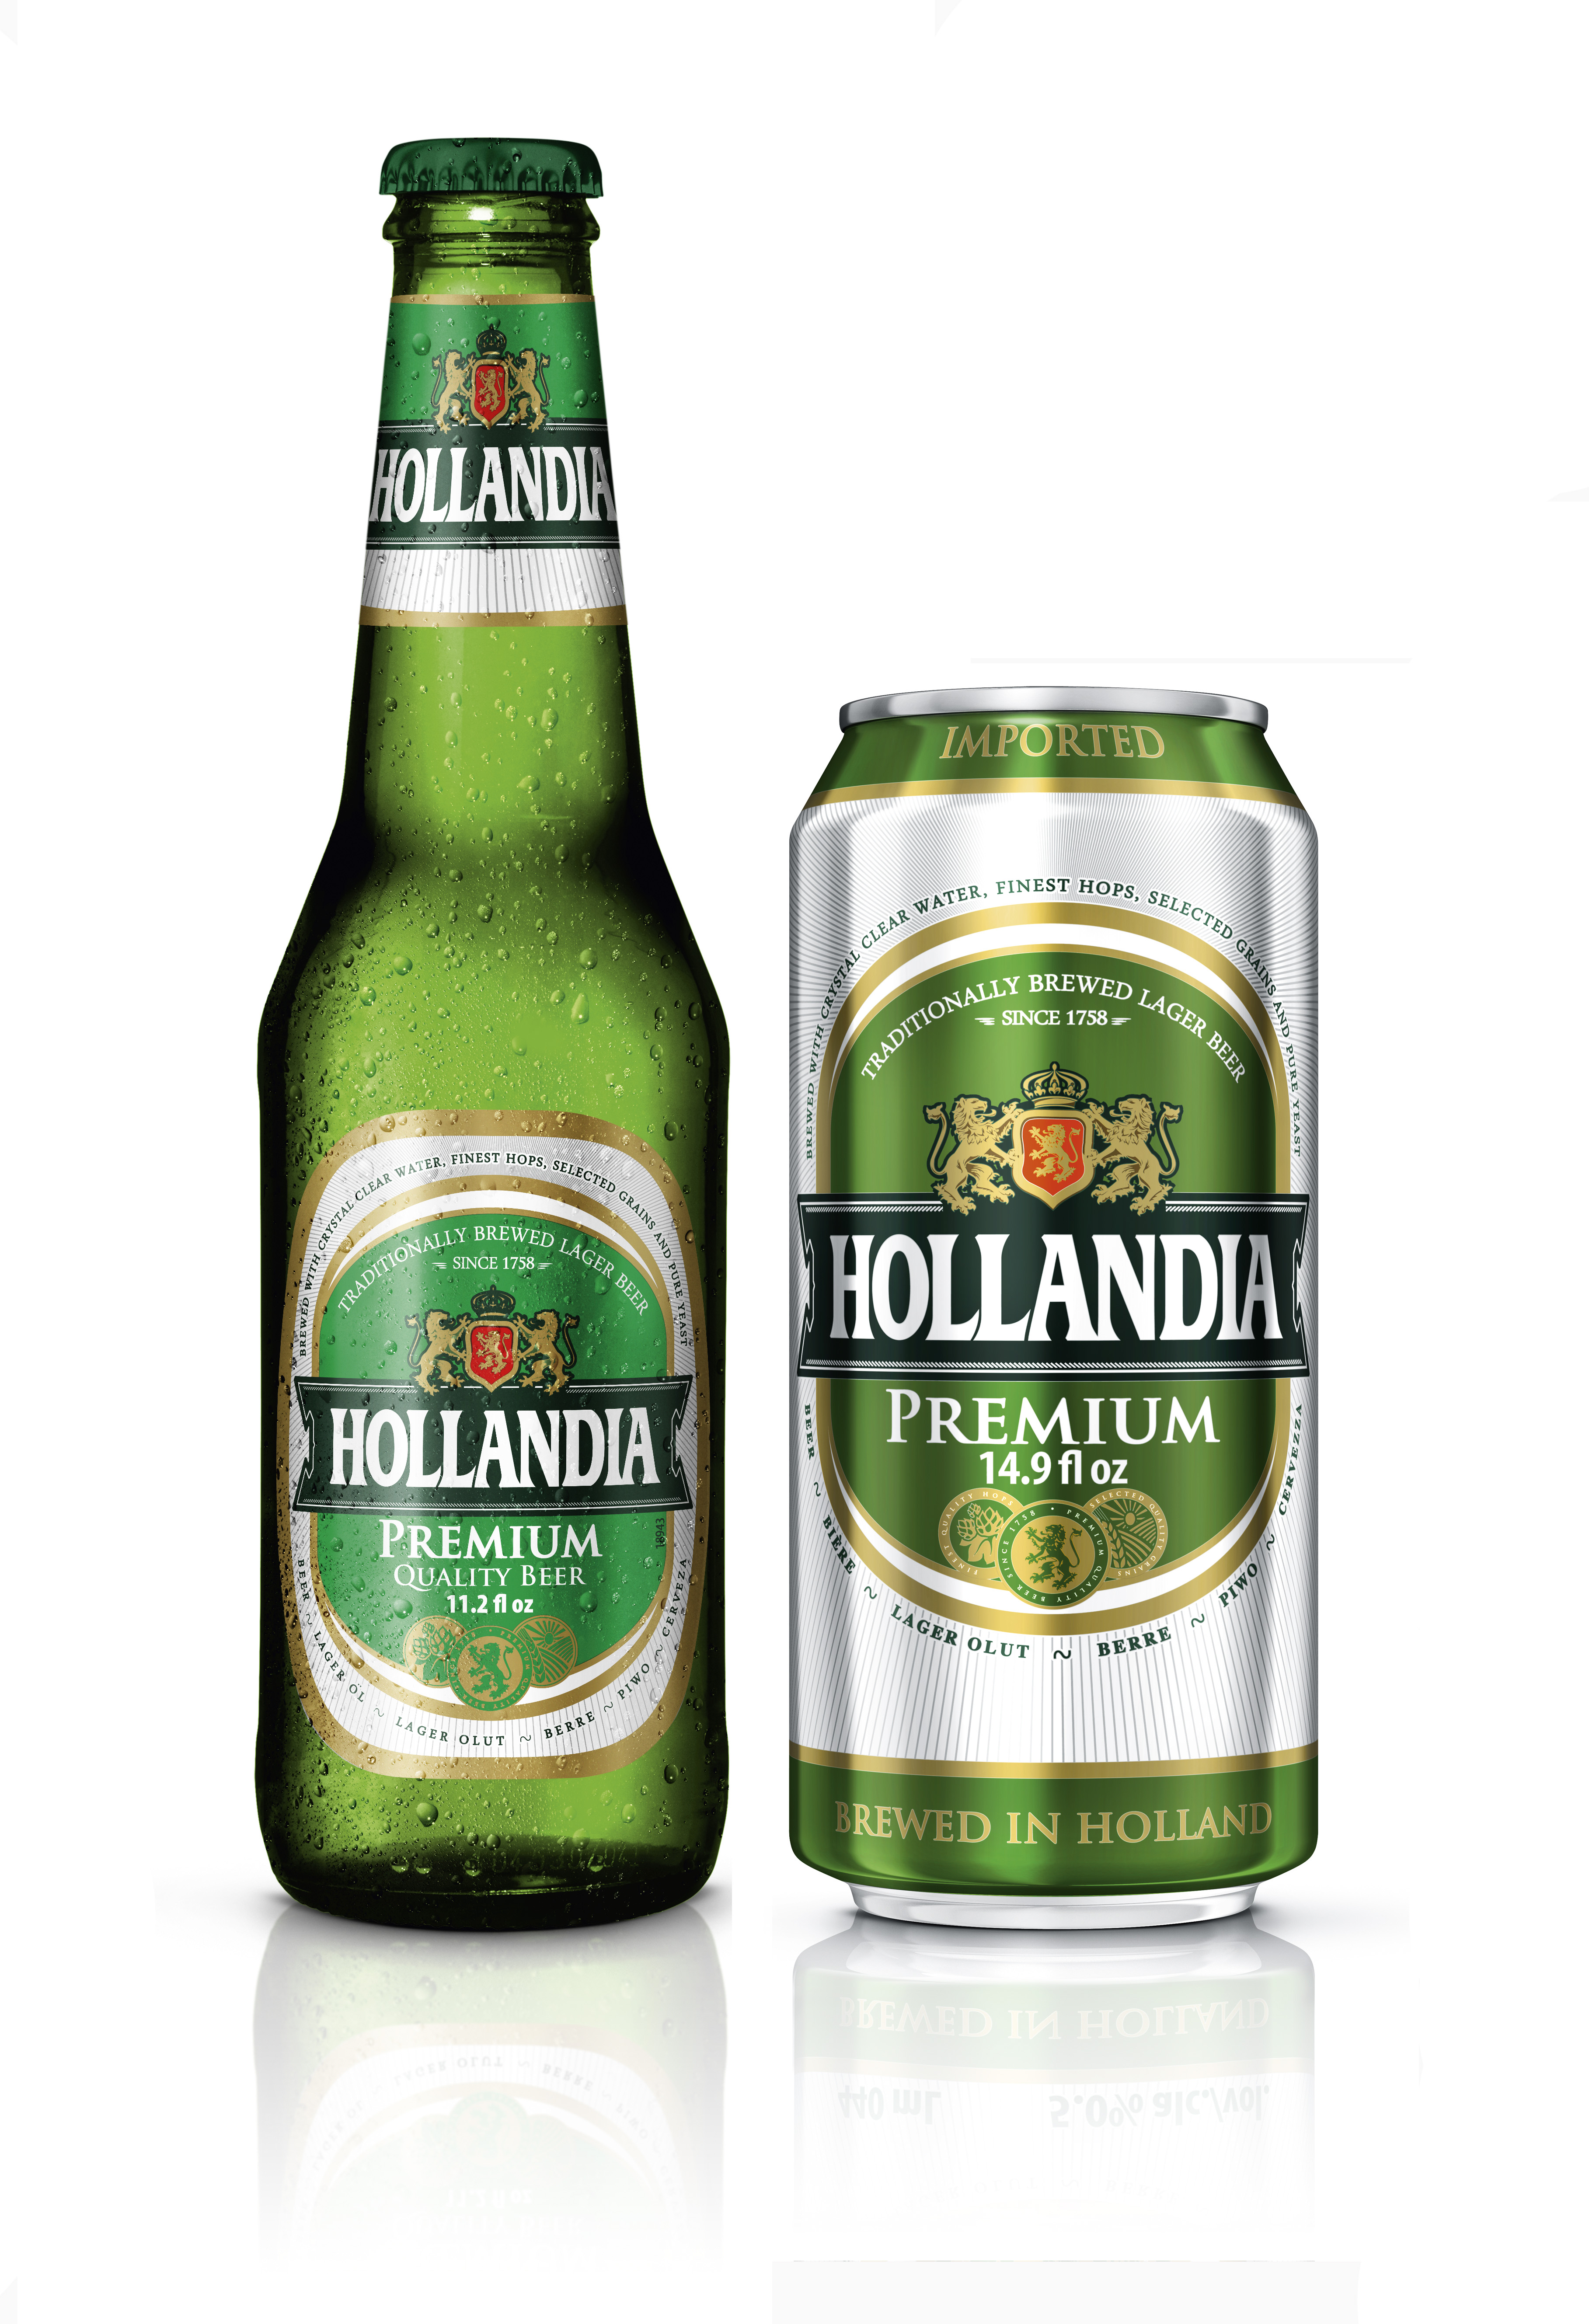 https://sfbimports.com/wp-content/uploads/2017/05/Hollandia-bottle-and-can.jpg